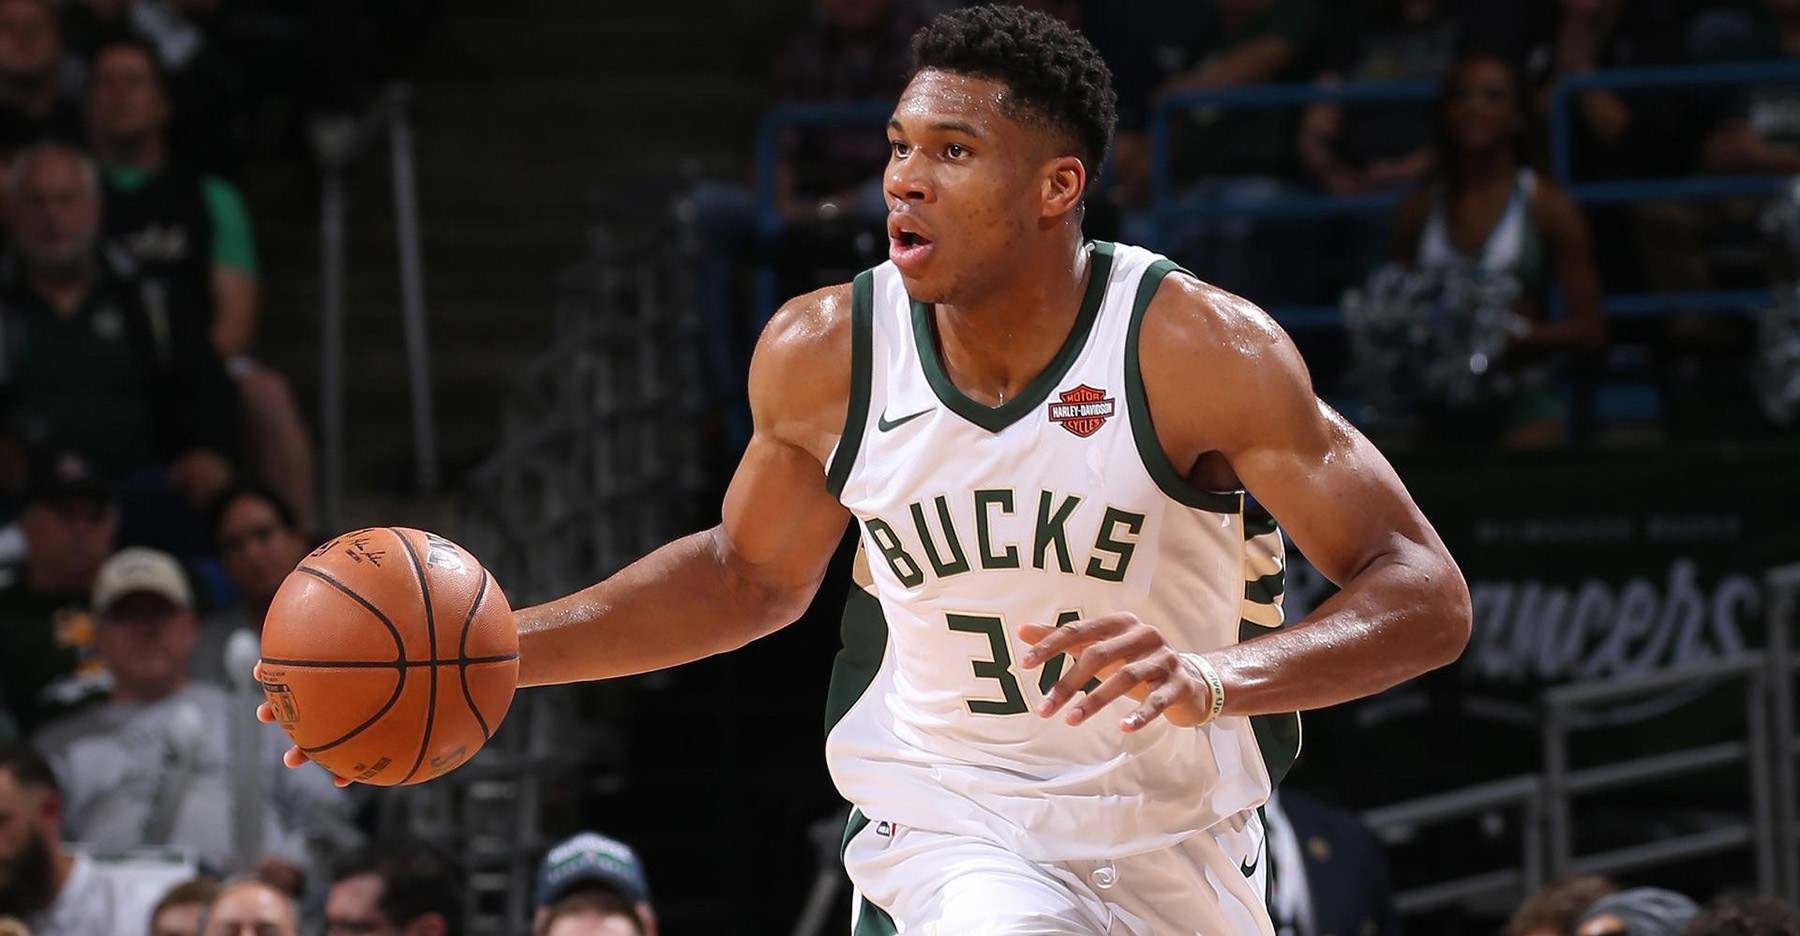 Photo of RIME NO TIME: Antetokounmpo